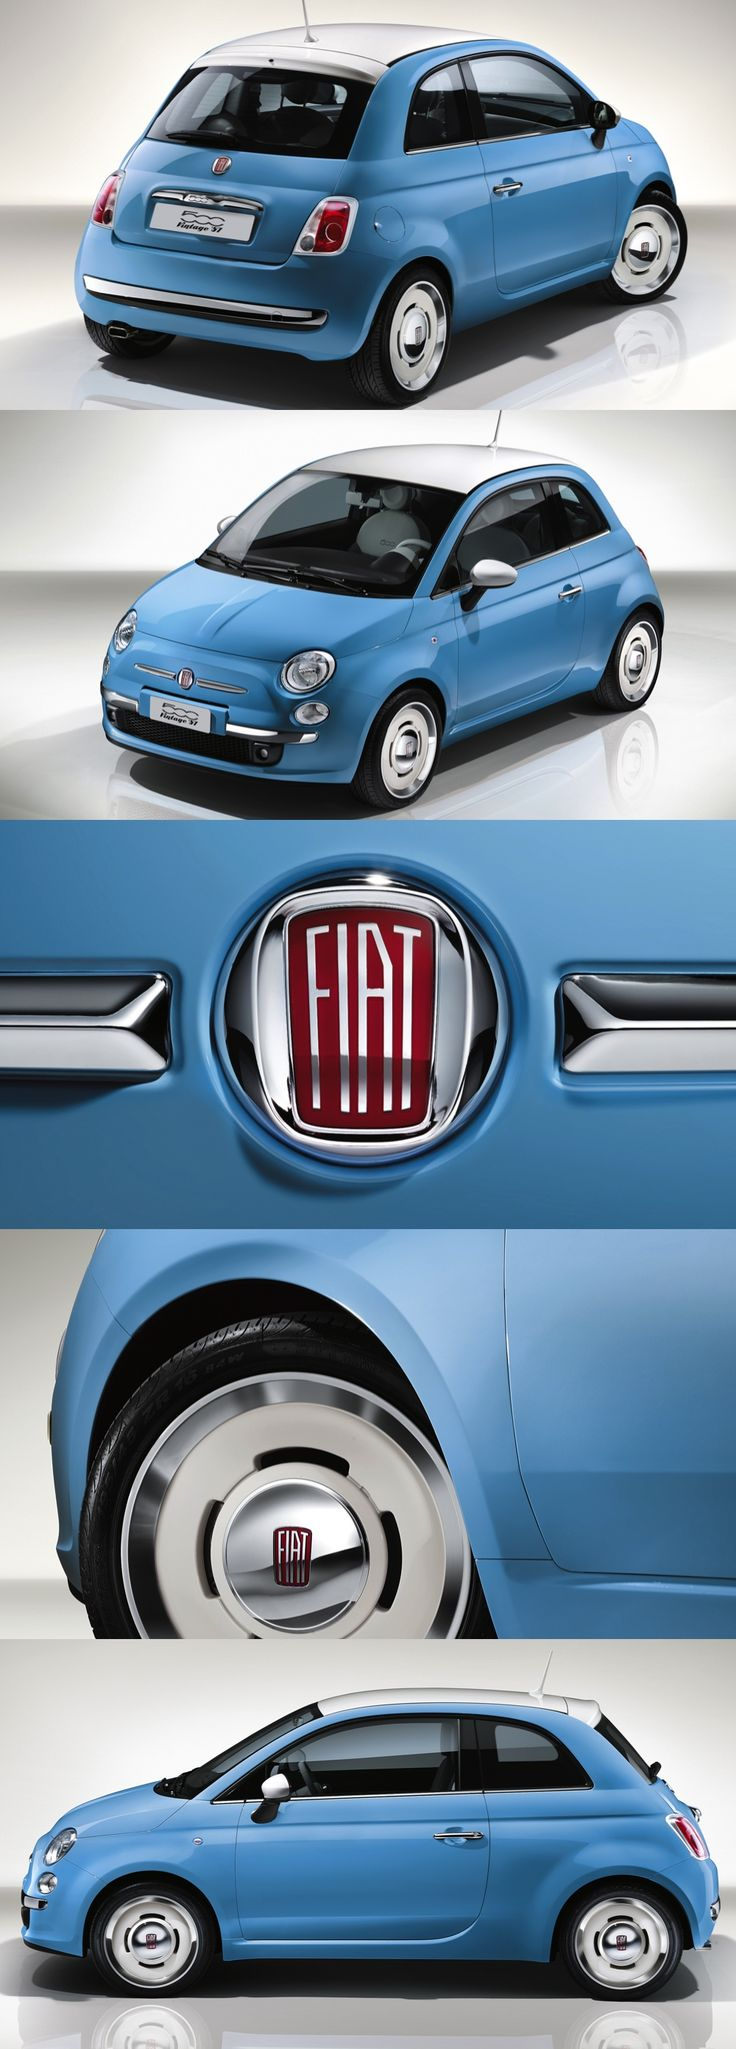 Fiat 500 Vintage'57 Even More Retro New FIAT 500 VINTAGE '57 a celebration of the original 1957 car.